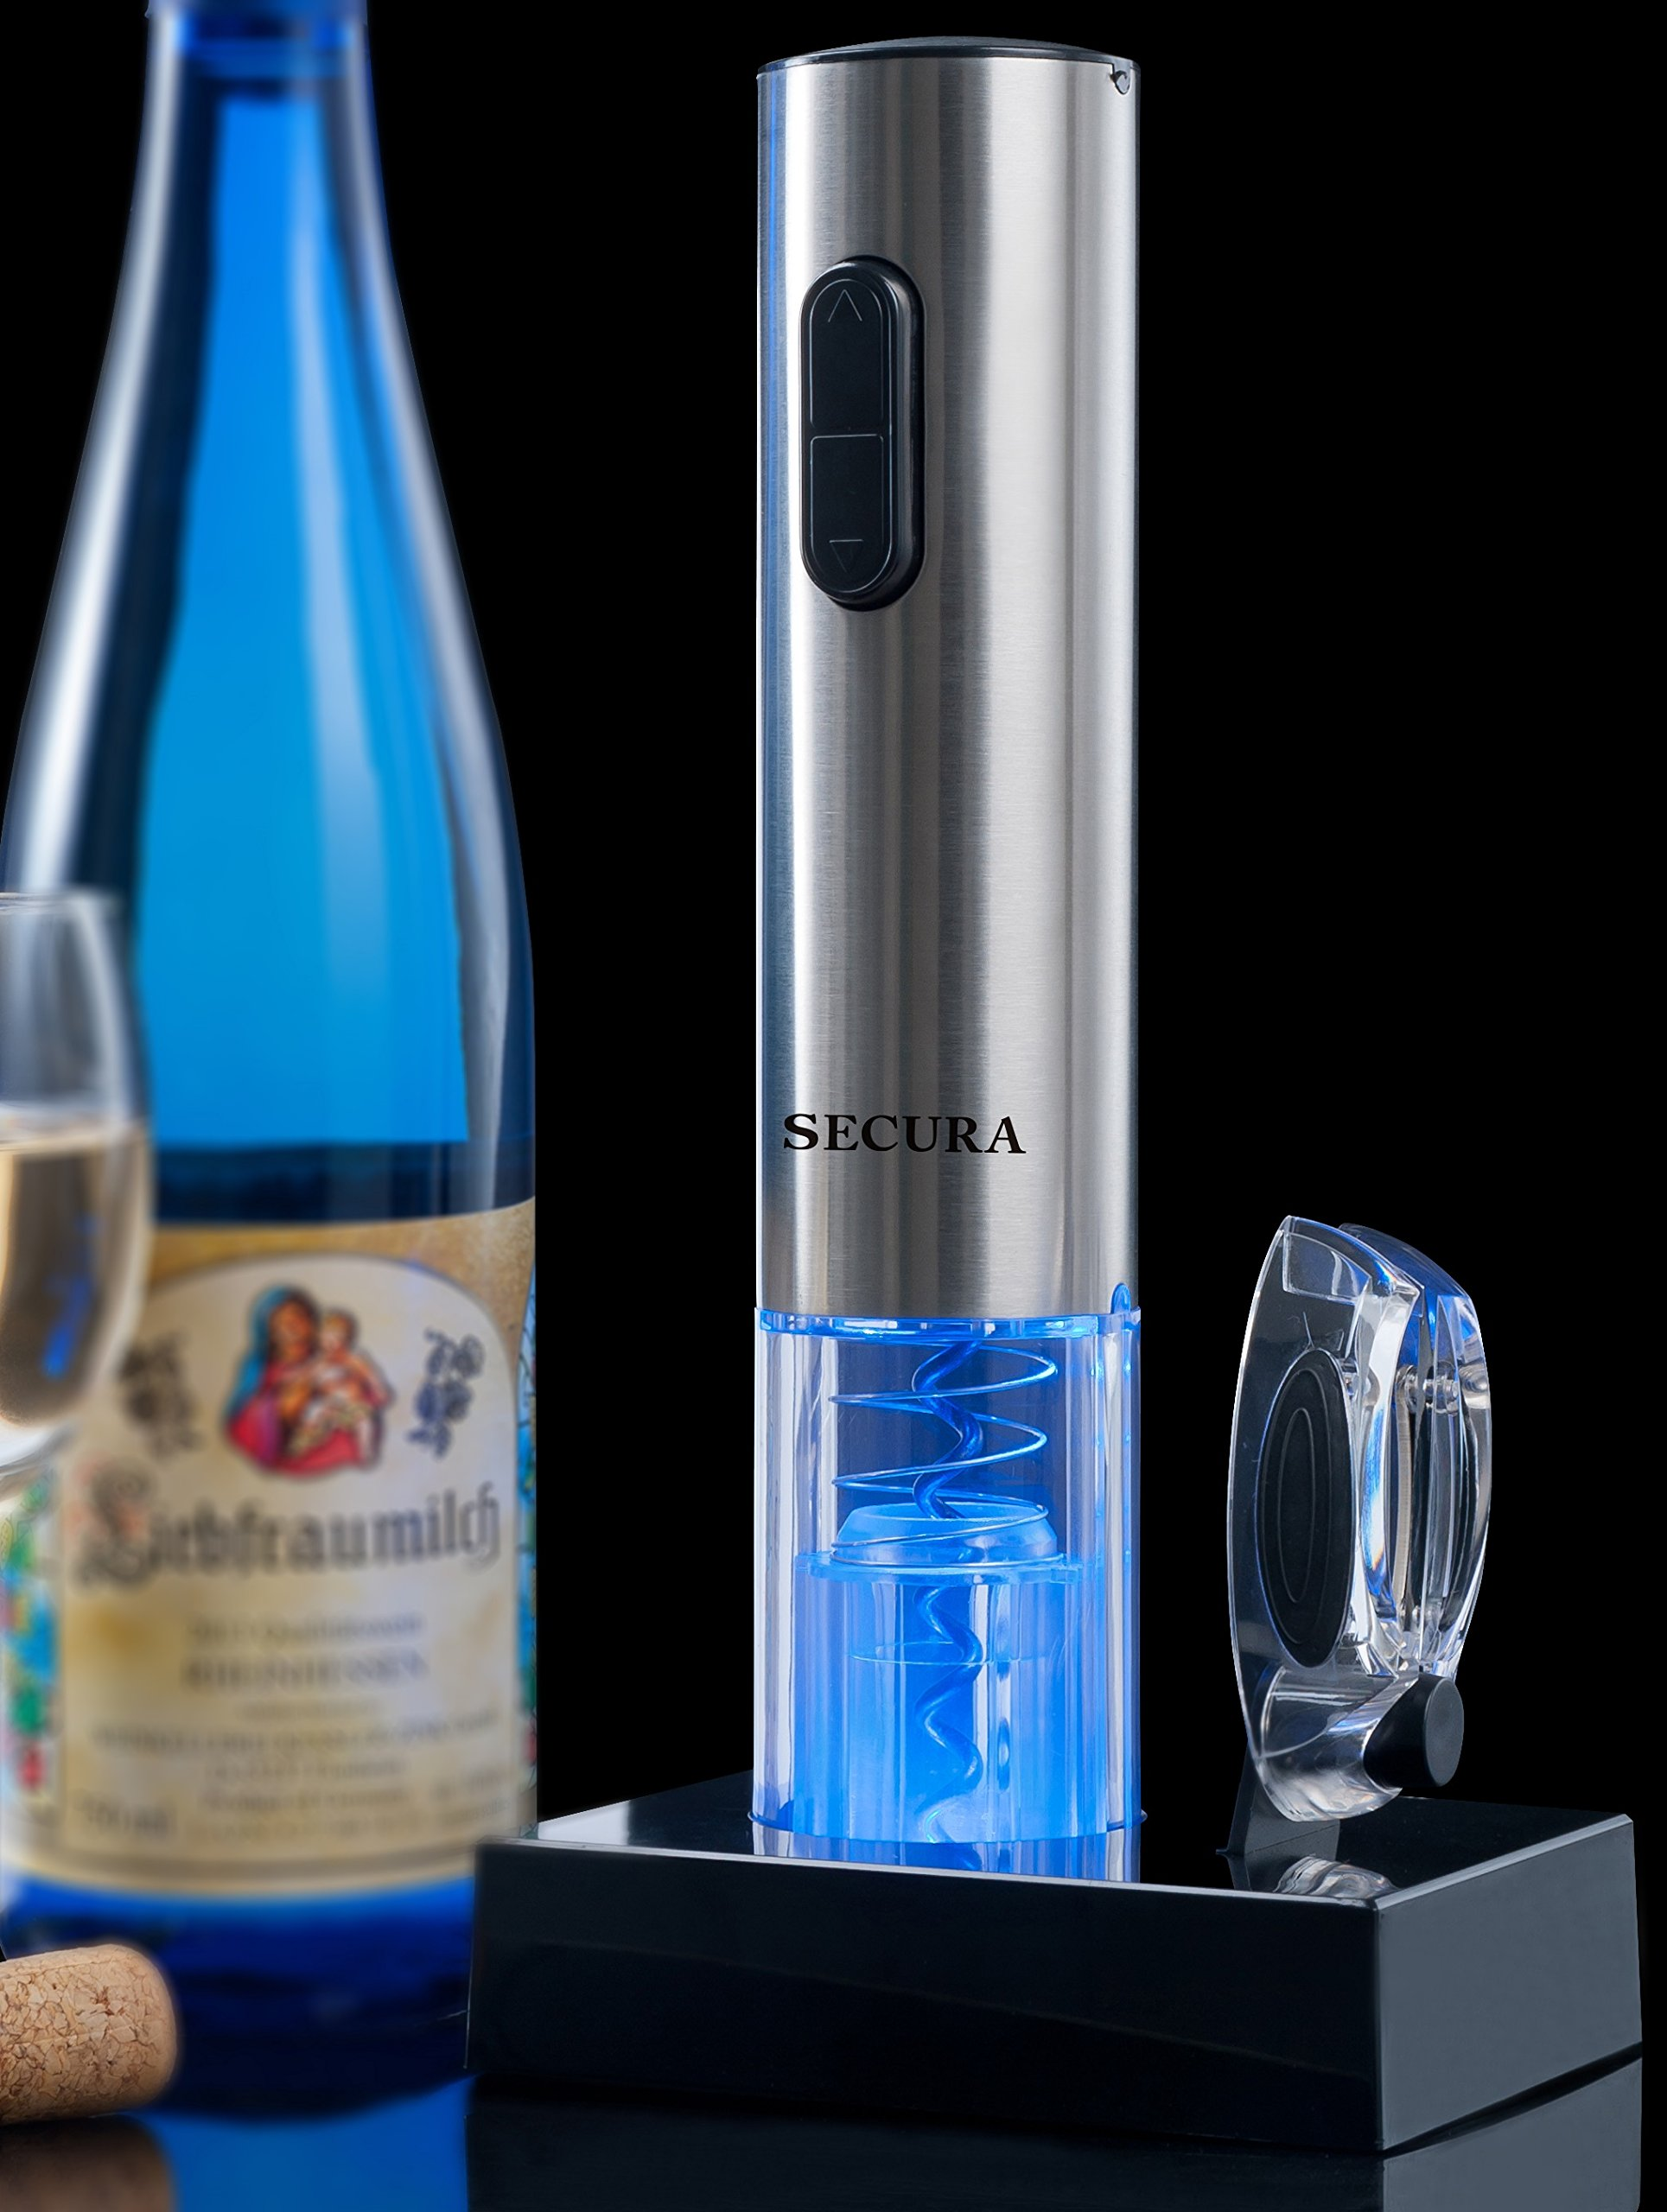 Secura SWO-3N Stainless Steel Electric Wine Opener Corkscrew Bottle Opener with Foil Cutter (Stainless Steel) by Secura (Image #3)